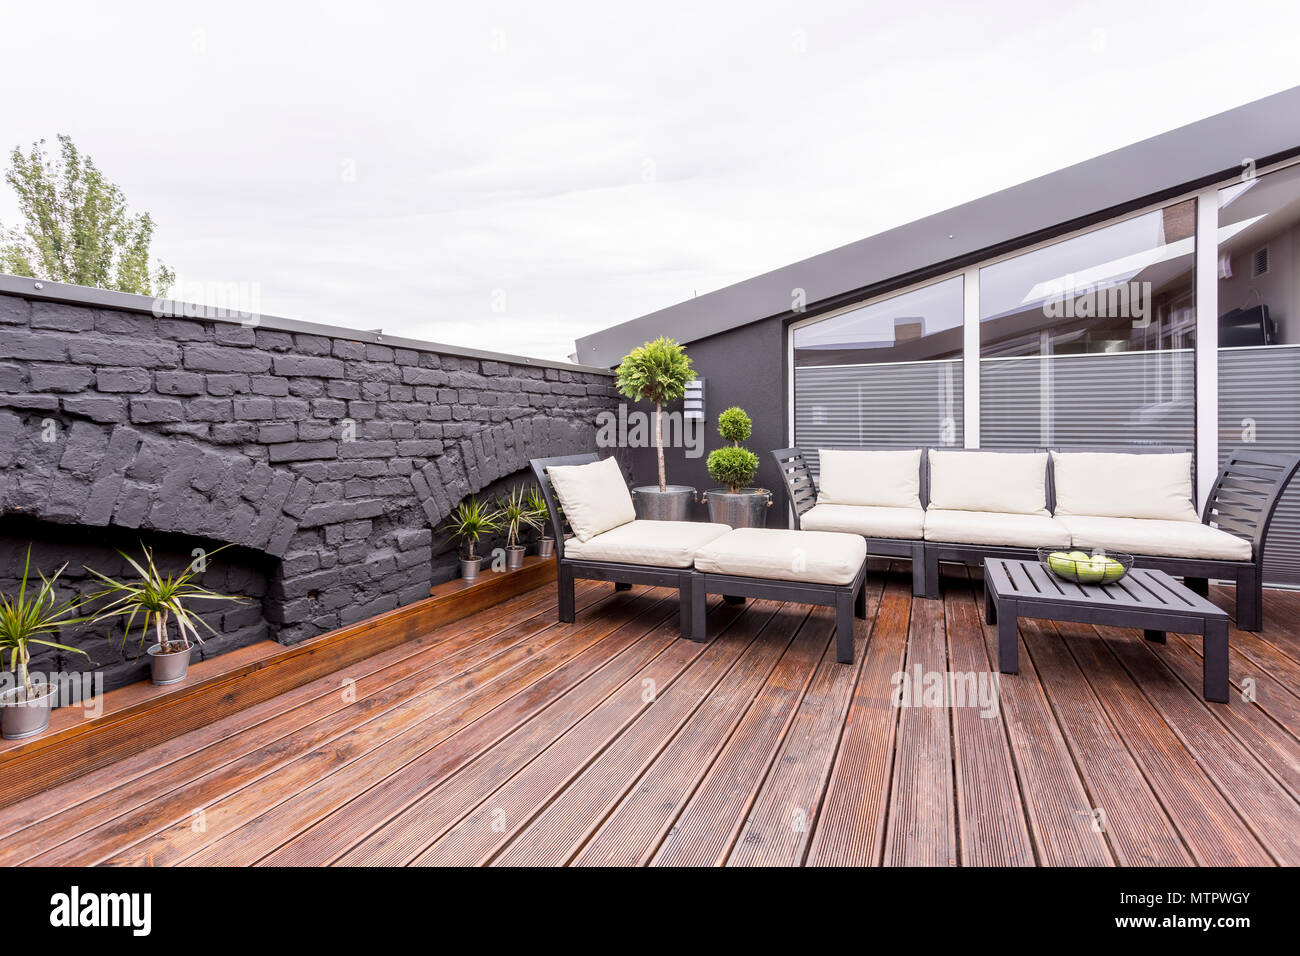 Apples in bowl on black wooden coffee table on terrace with garden furniture and brick wall - Stock Image